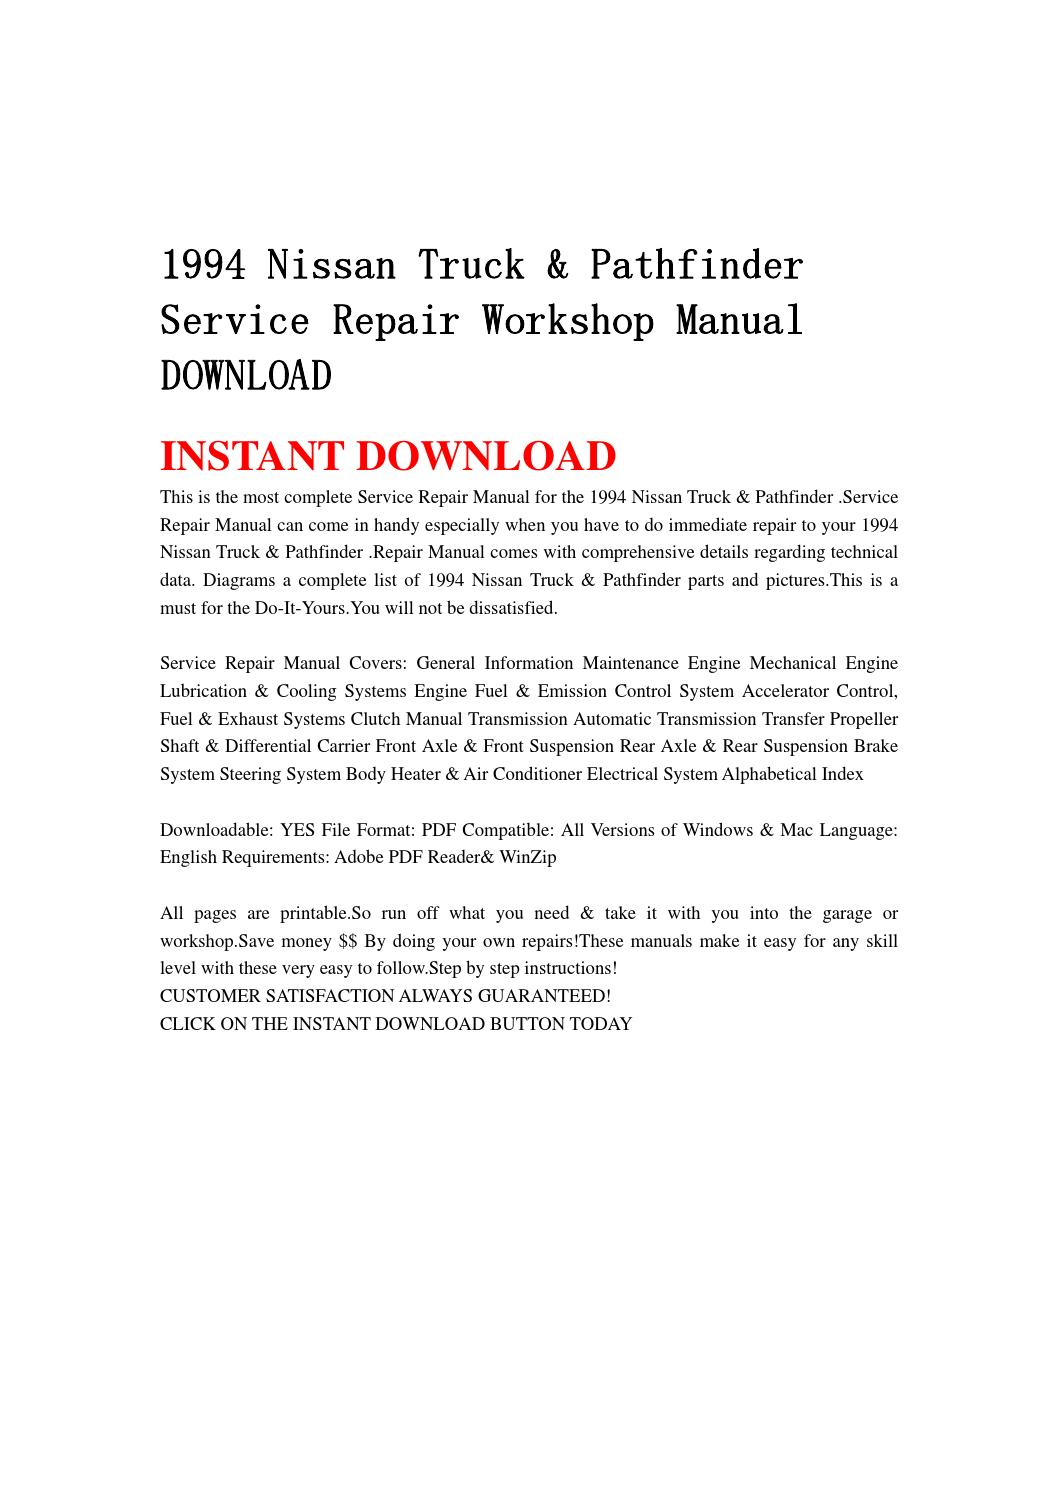 1994 Nissan Truck Pathfinder Service Repair Workshop Manual Engine Diagram Download By Jghdjrgn Issuu